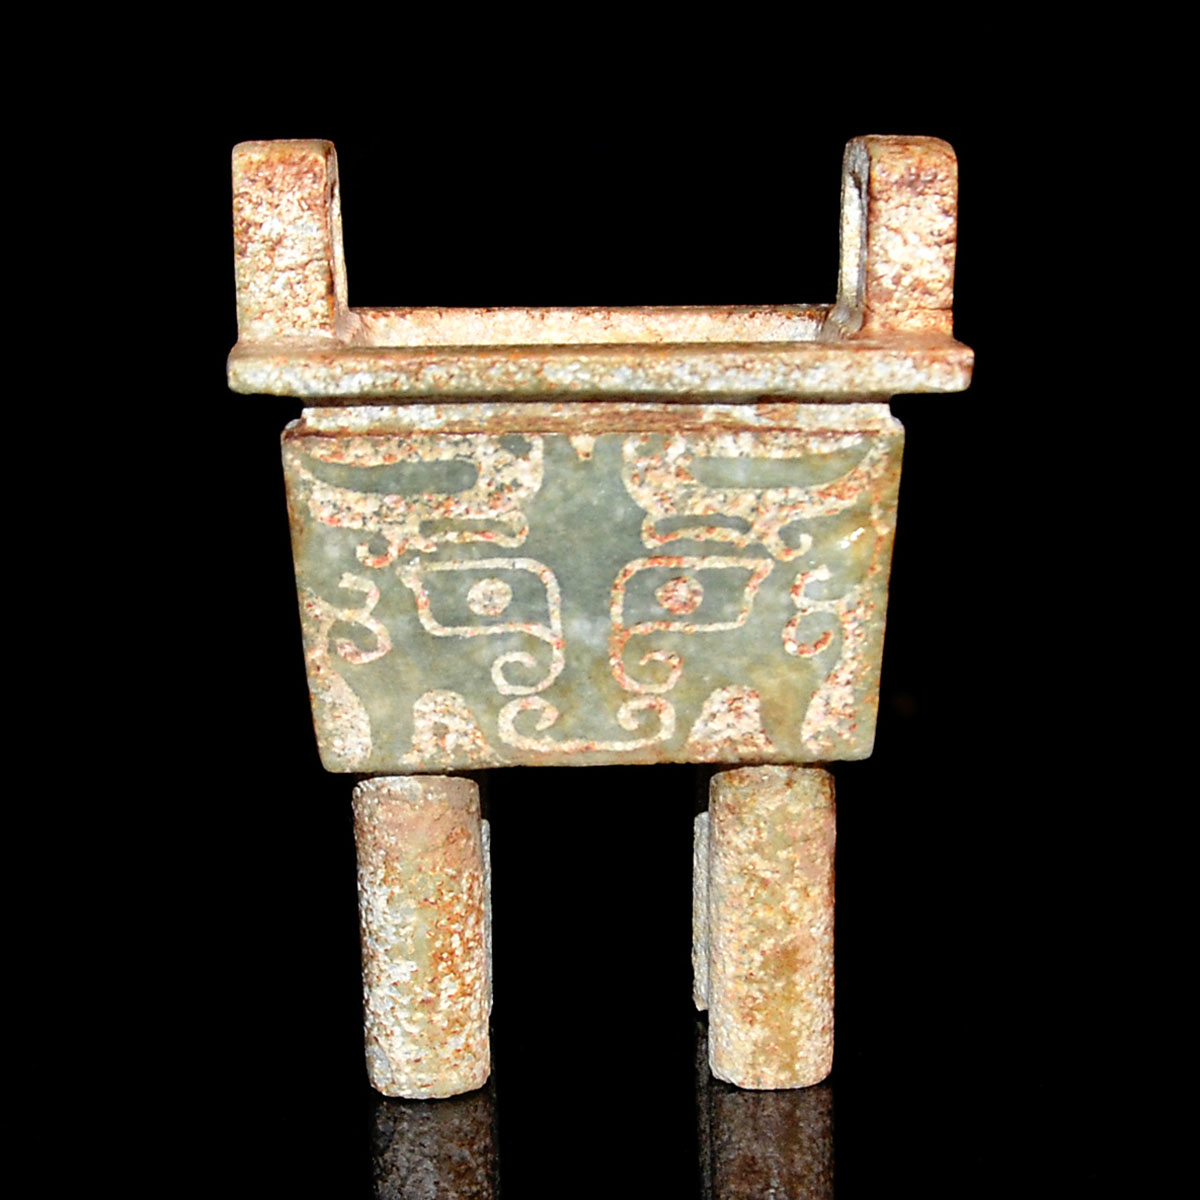 周-玉雕獸面紋方鼎 Zhou, Jade Fang Ding Carved with Taotie Masks and Two Upright Loop Handles with Four